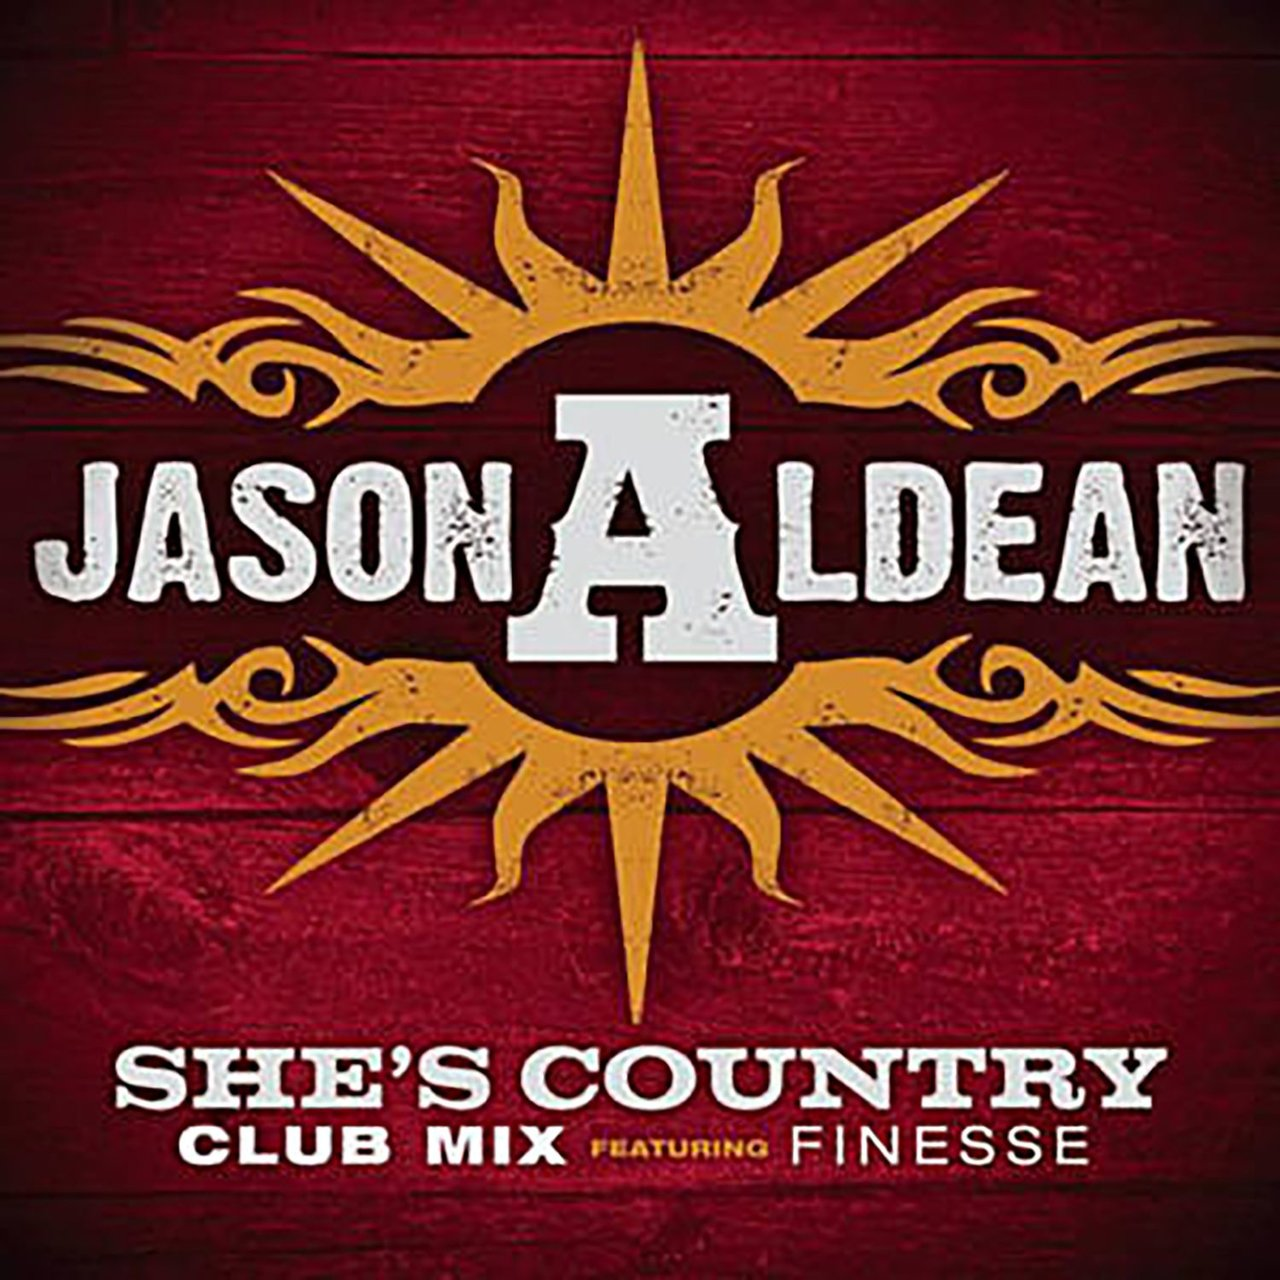 She's Country (Club Mix)